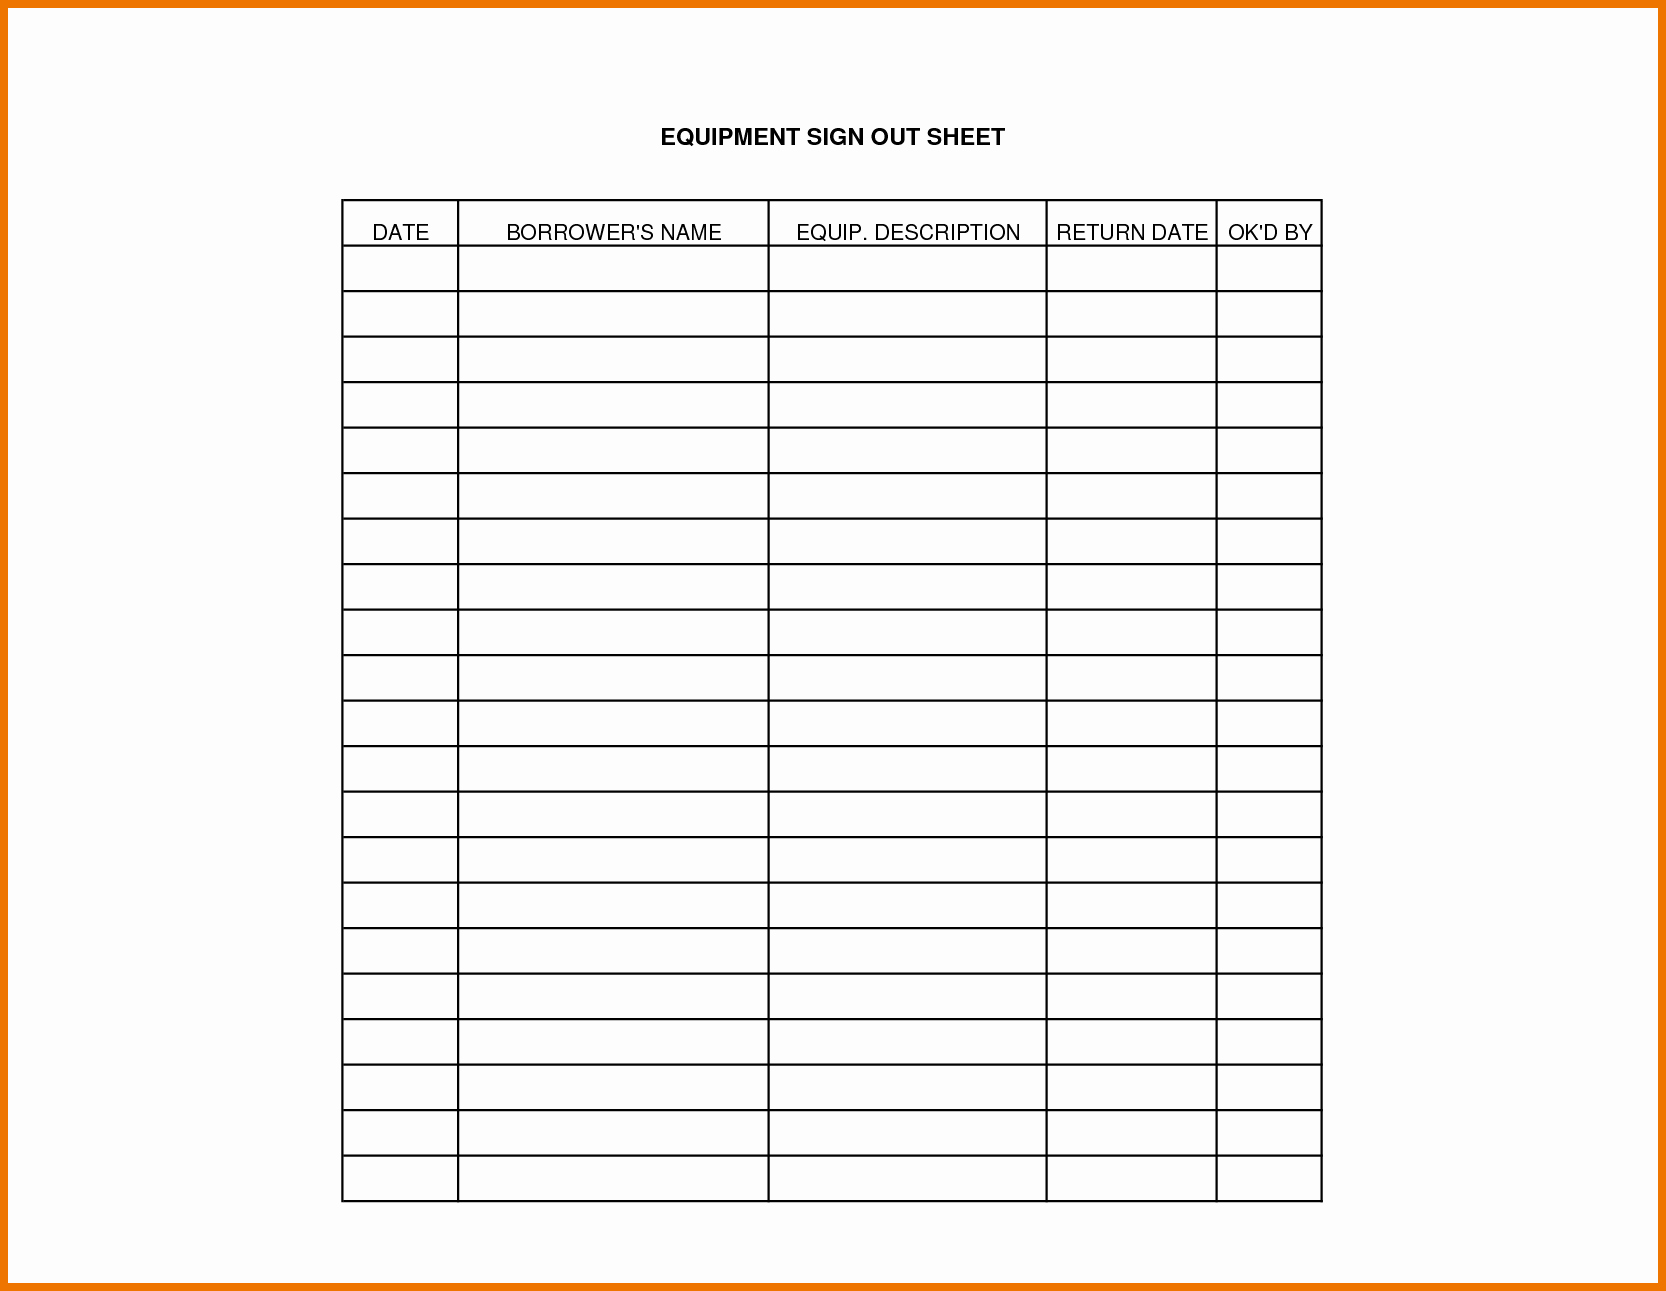 Equipment Sign Out Sheet Template Inspirational Equipment Sign Out Sheet Template